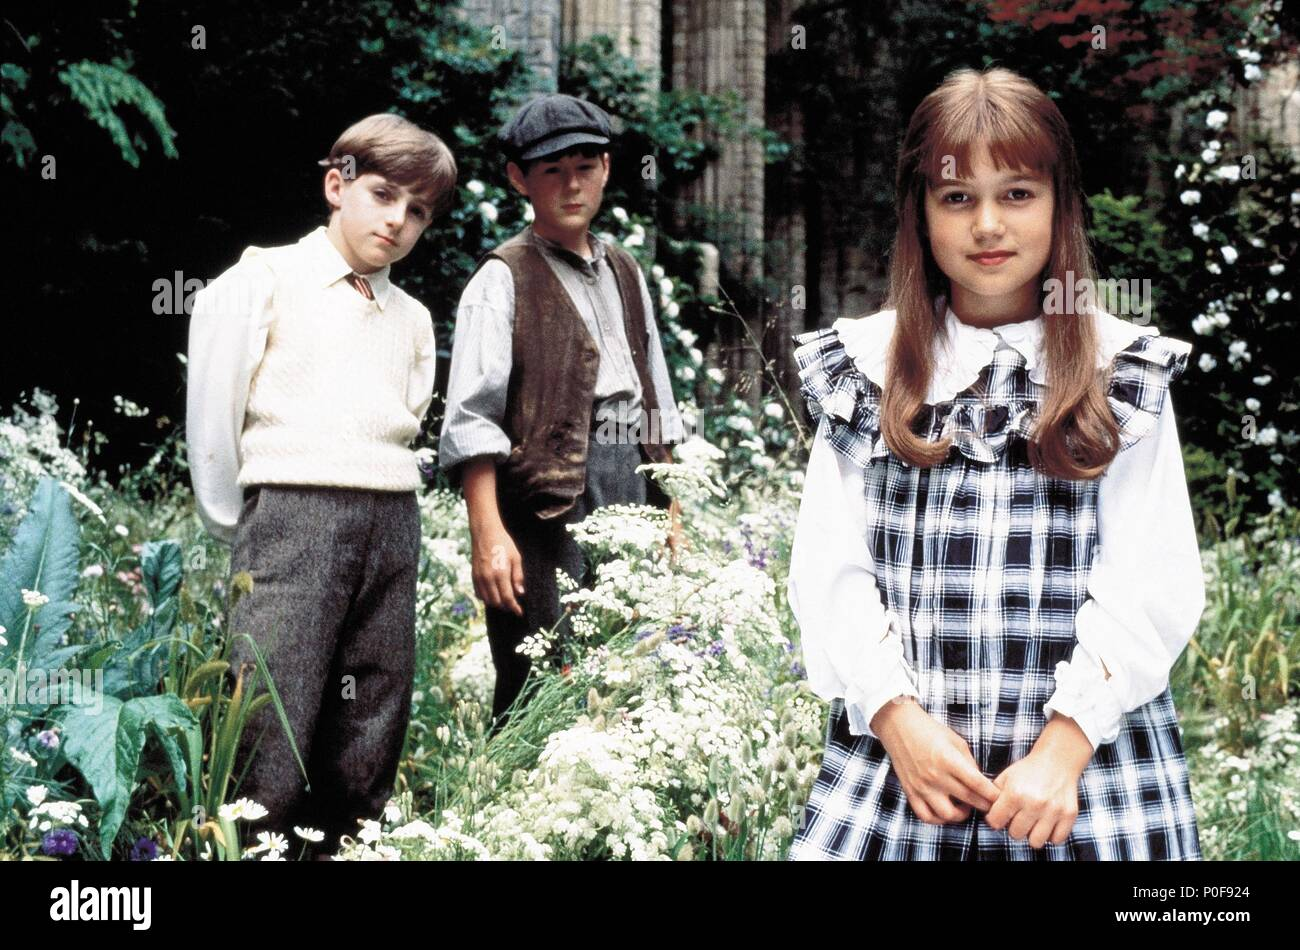 Der Geheimnisvolle Garten The Secret Garden Film Stock Photos The Secret Garden Film Stock